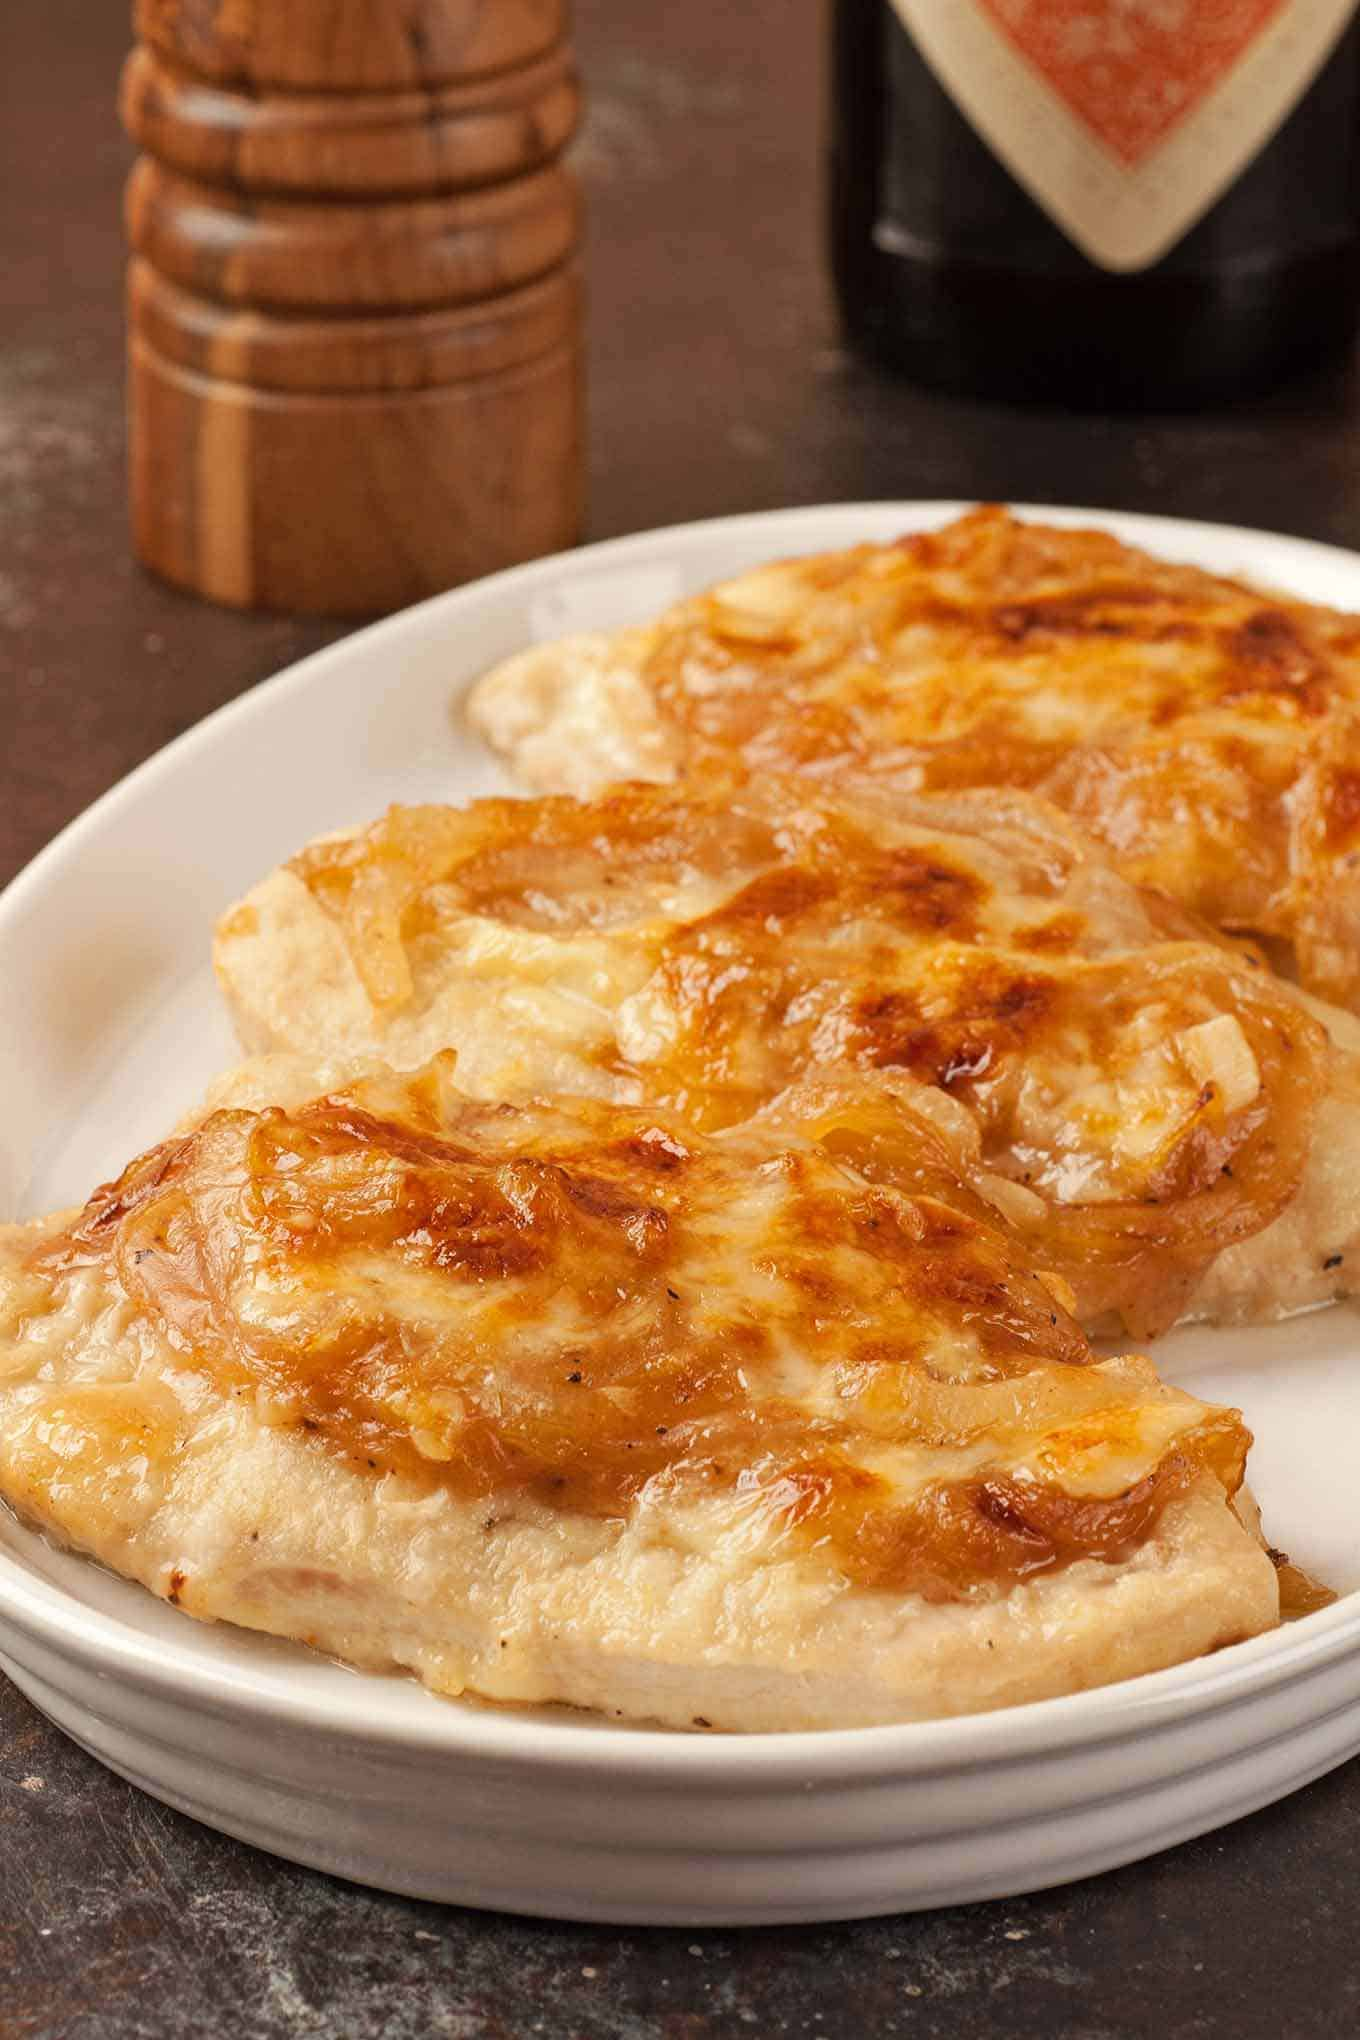 Chicken with Sherry-Caramelized Onions and Cheese